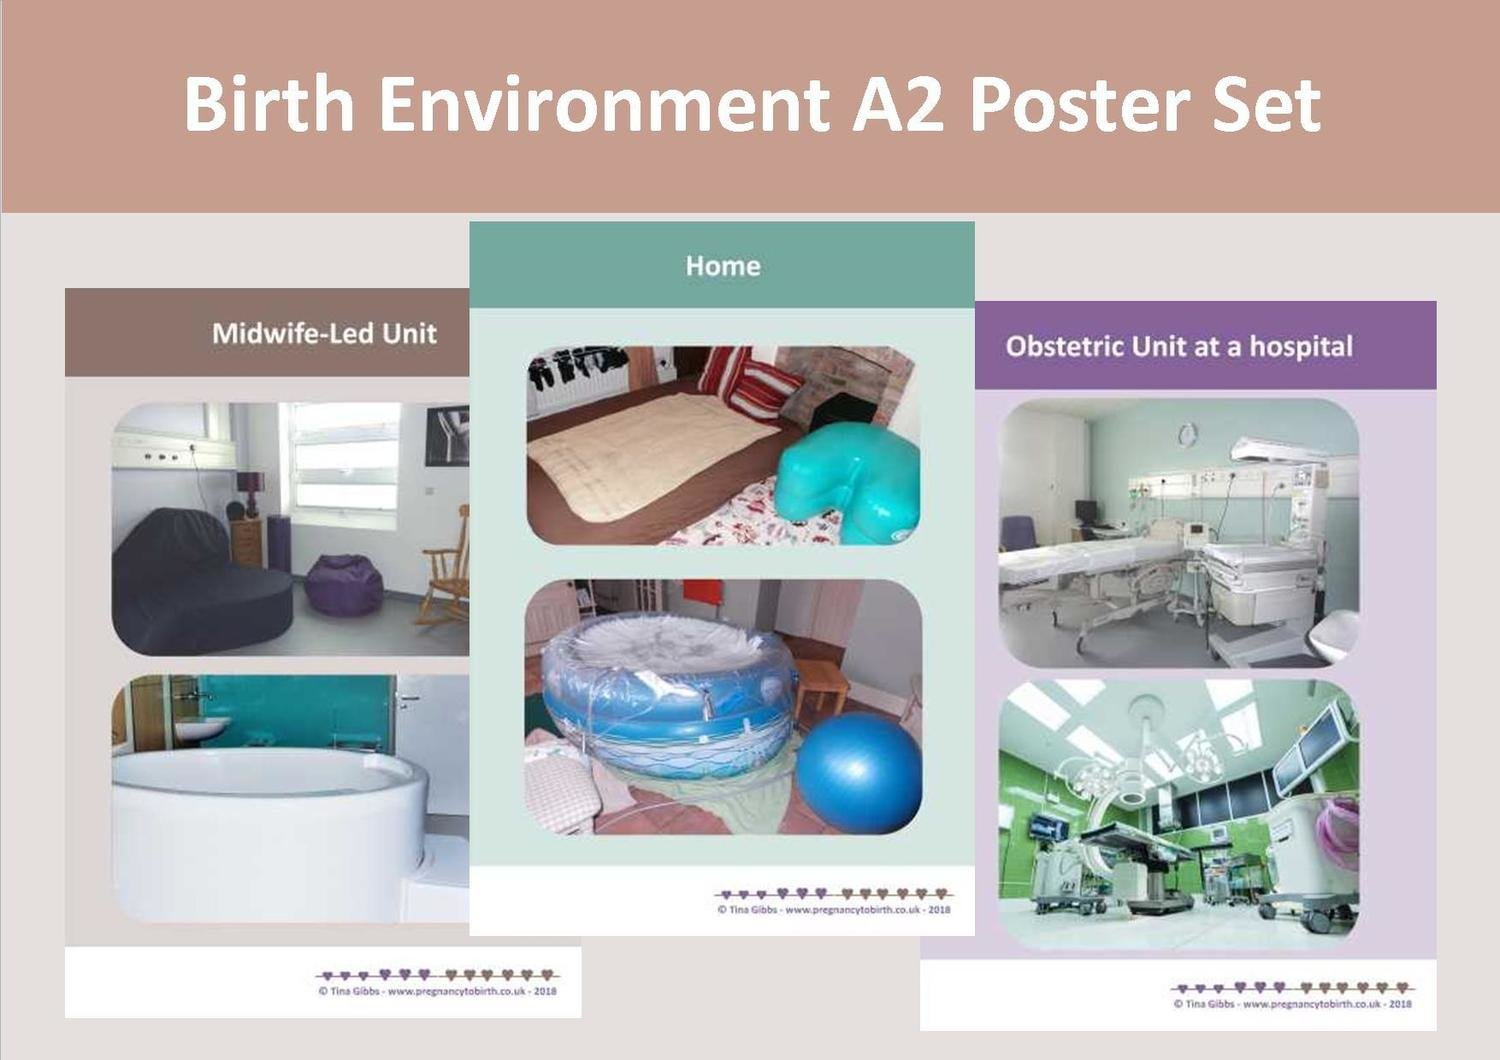 The Birth Environment - A2 poster set